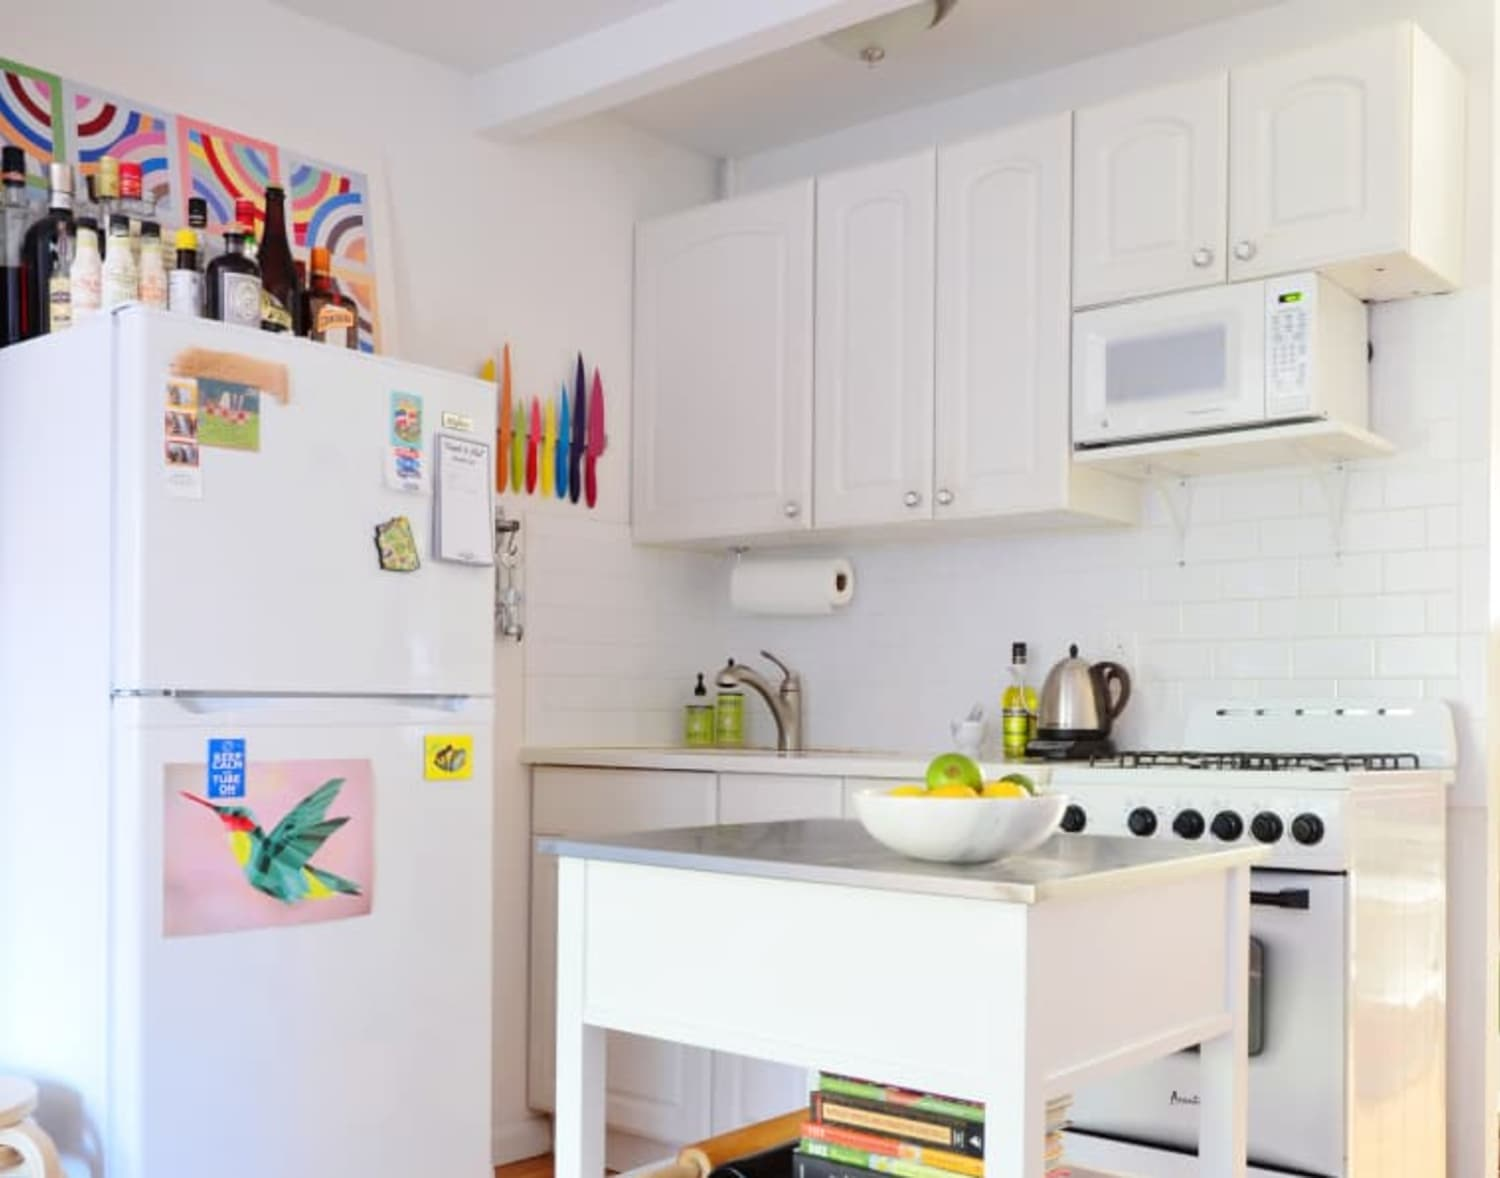 7 Temporary Products Every Renter Should Know About